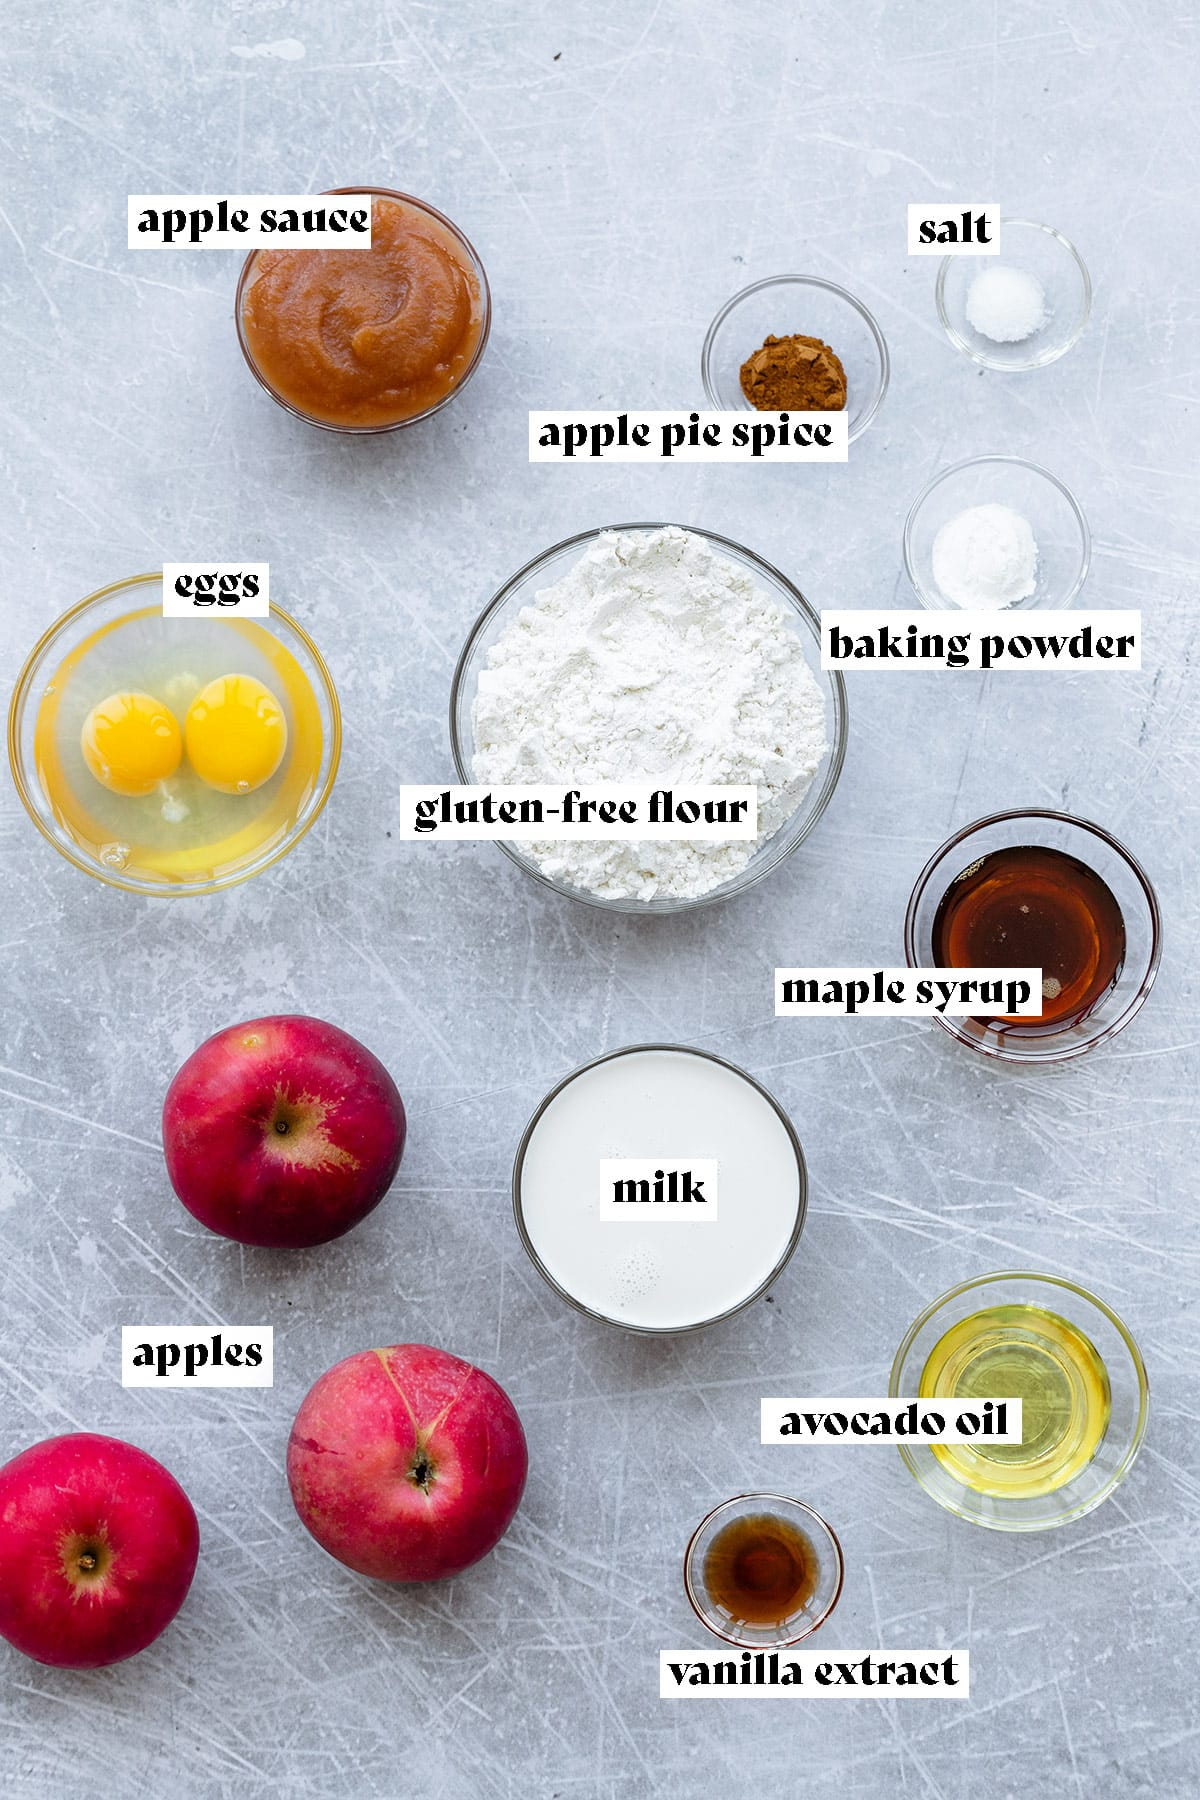 Ingredients for apple ring pancakes all laid out on a light metal background.